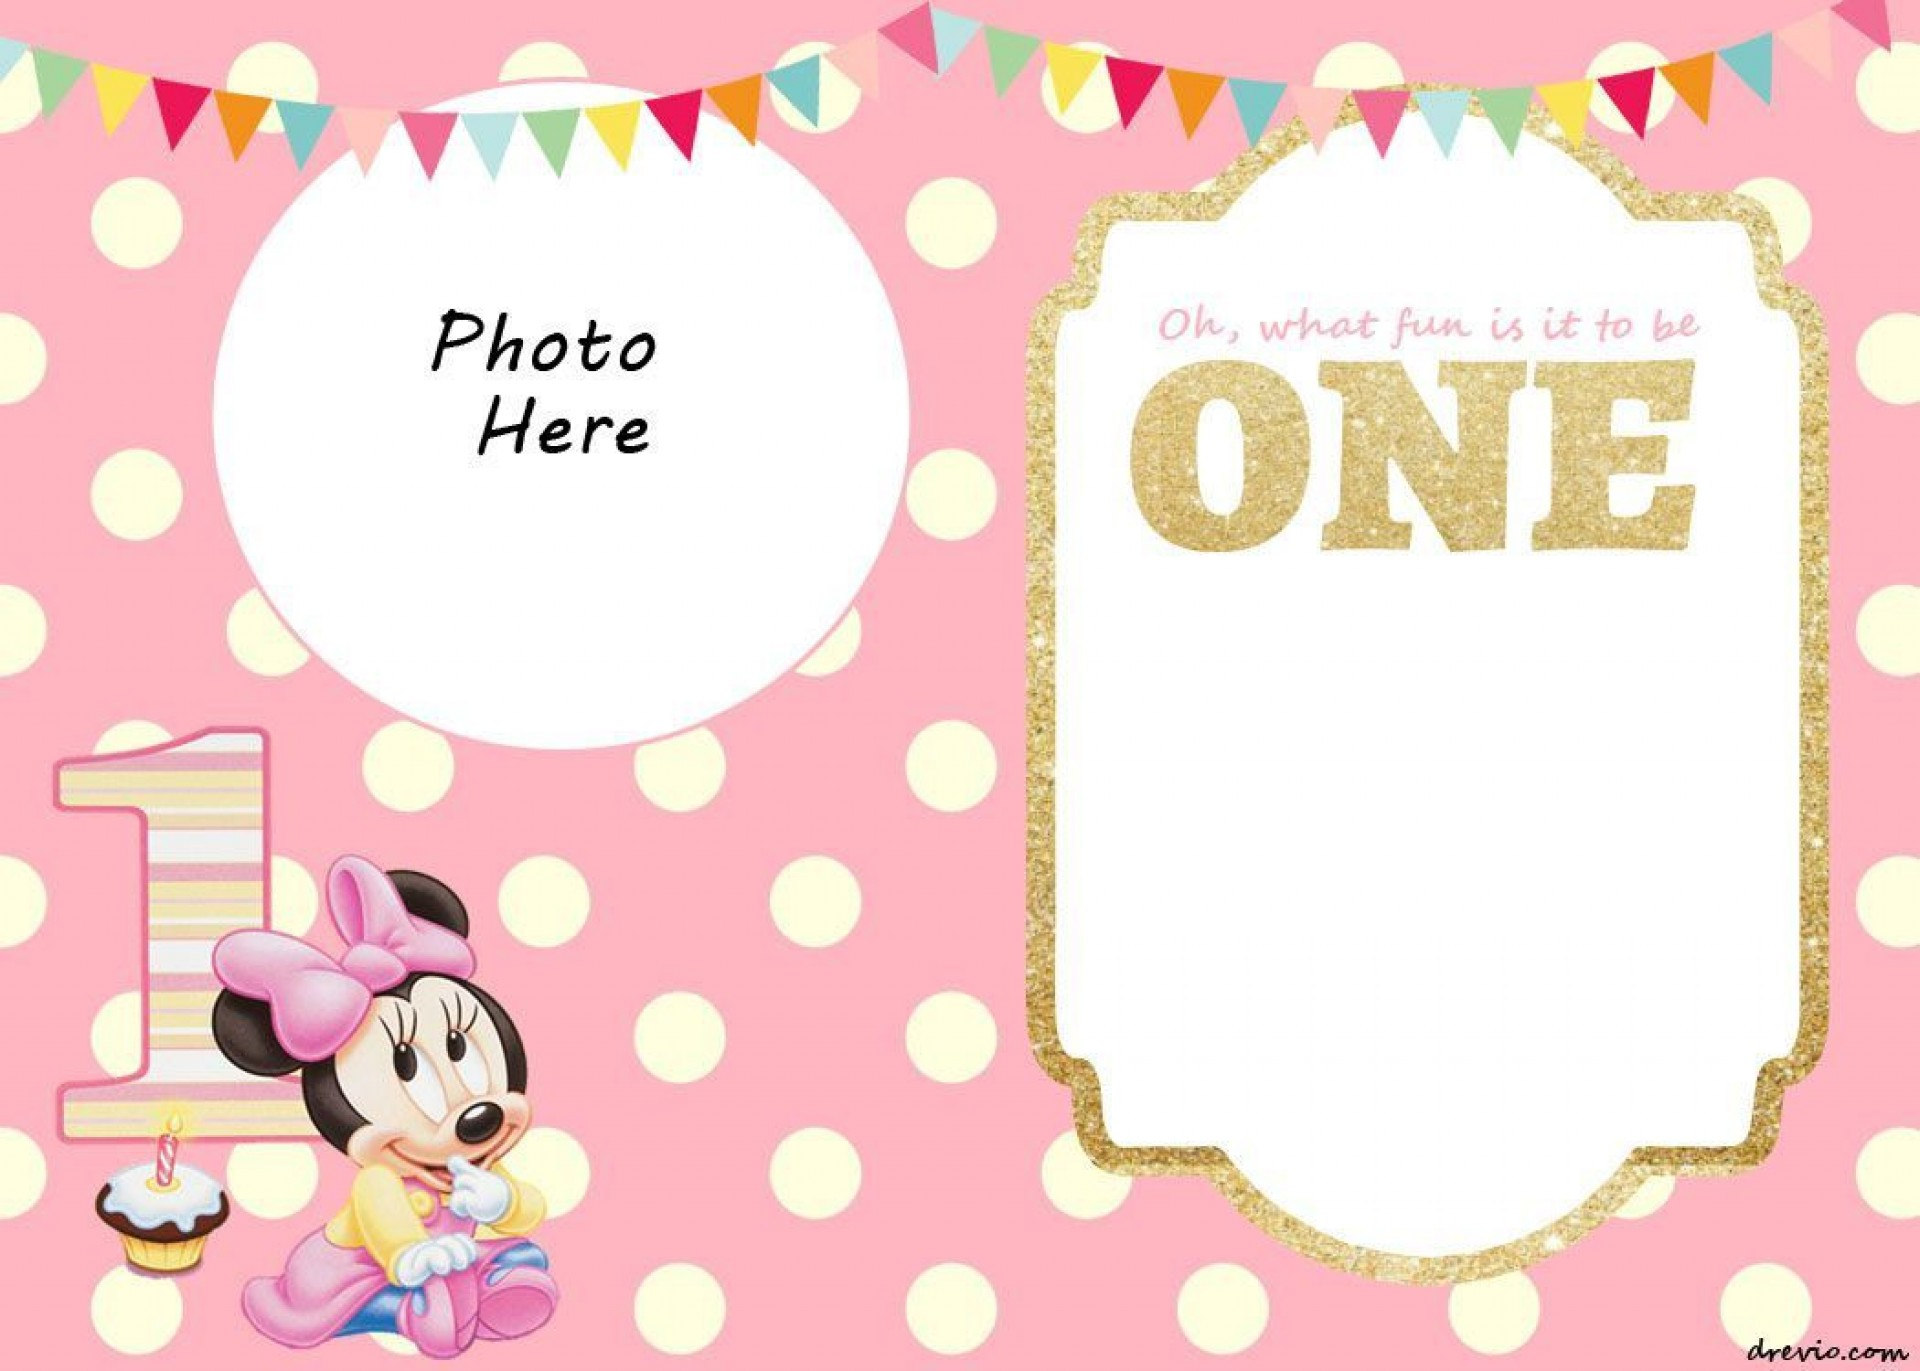 006 Fantastic 1st Birthday Invitation Template High Def  Background Design Blank For Girl First Baby Boy Free Download Indian1920